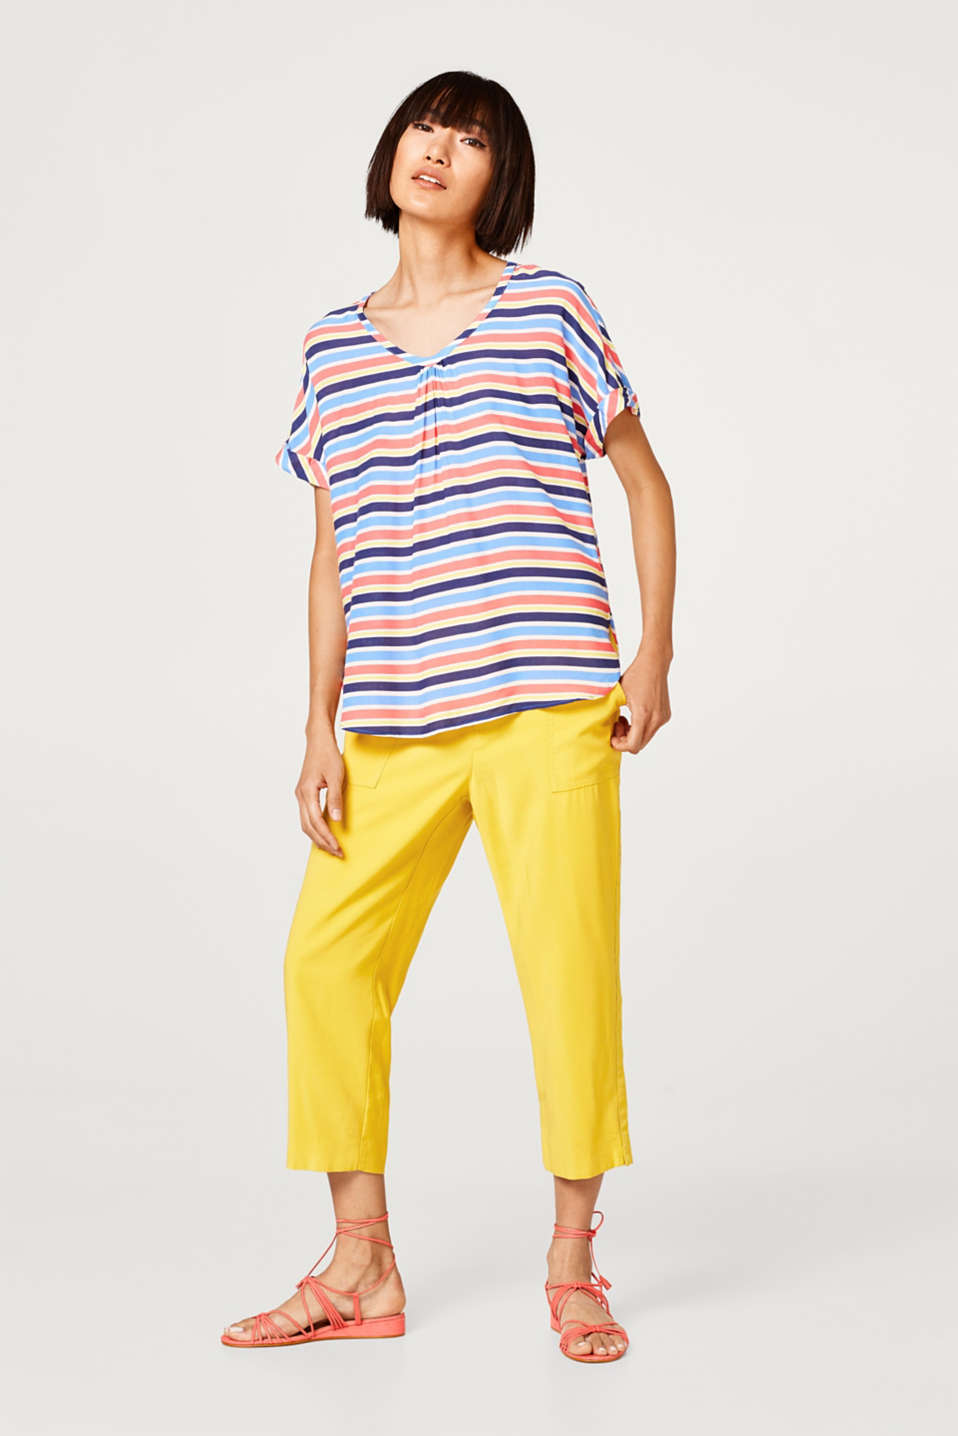 Blouse top with a colourful striped pattern